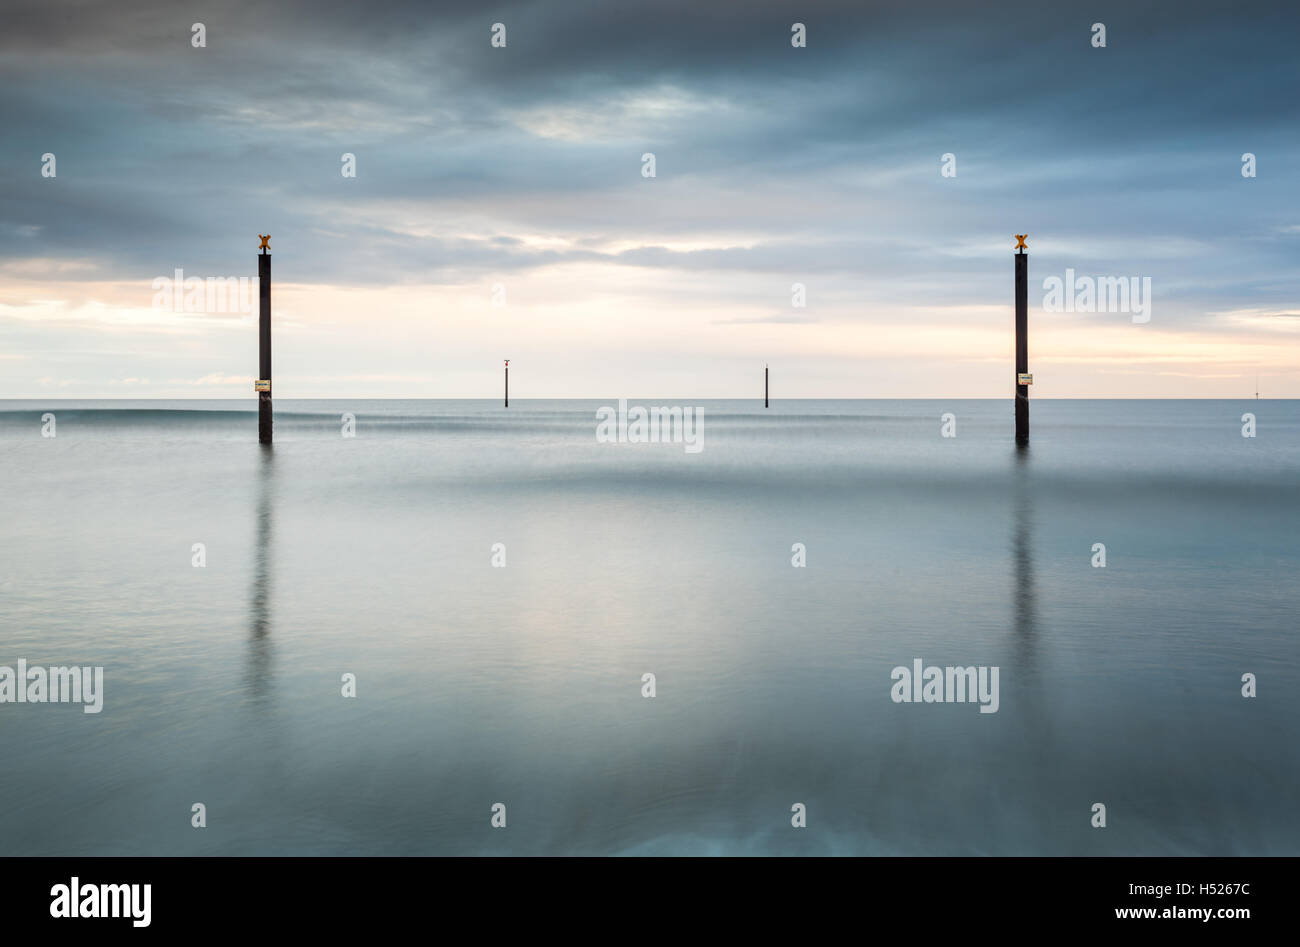 Navigation guide posts out at sea in the North Sea off the Northumberland coast, long exposure on an overcast day Stock Photo